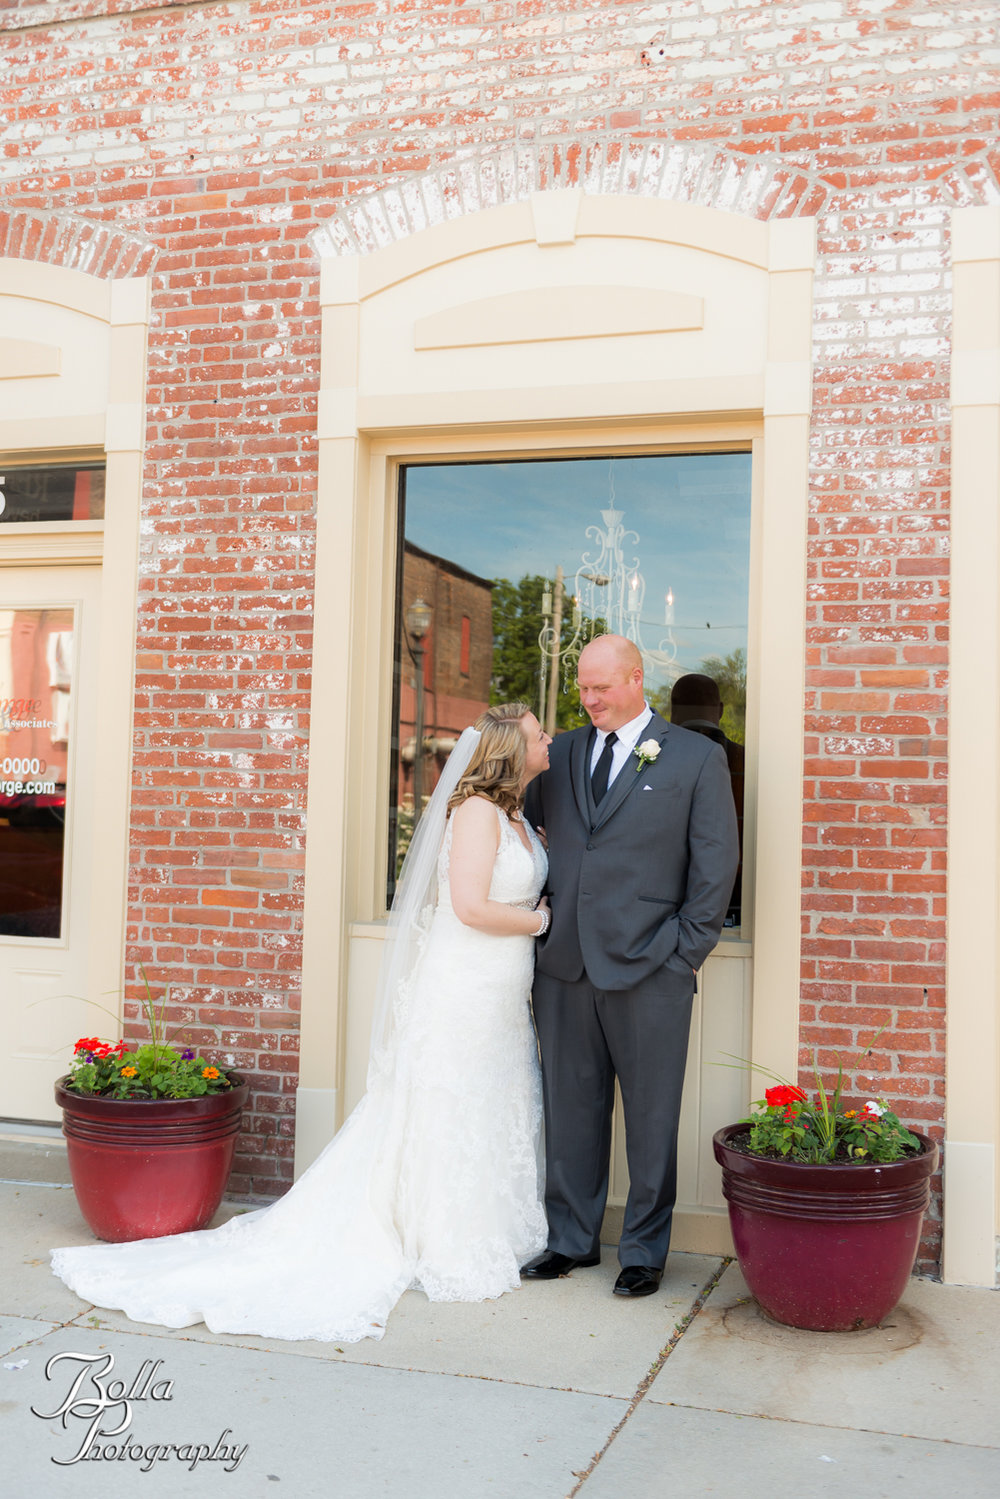 Bolla_Photography_St_Louis_wedding_photographer_Wildey_Theater_Edwardsville-0239.jpg